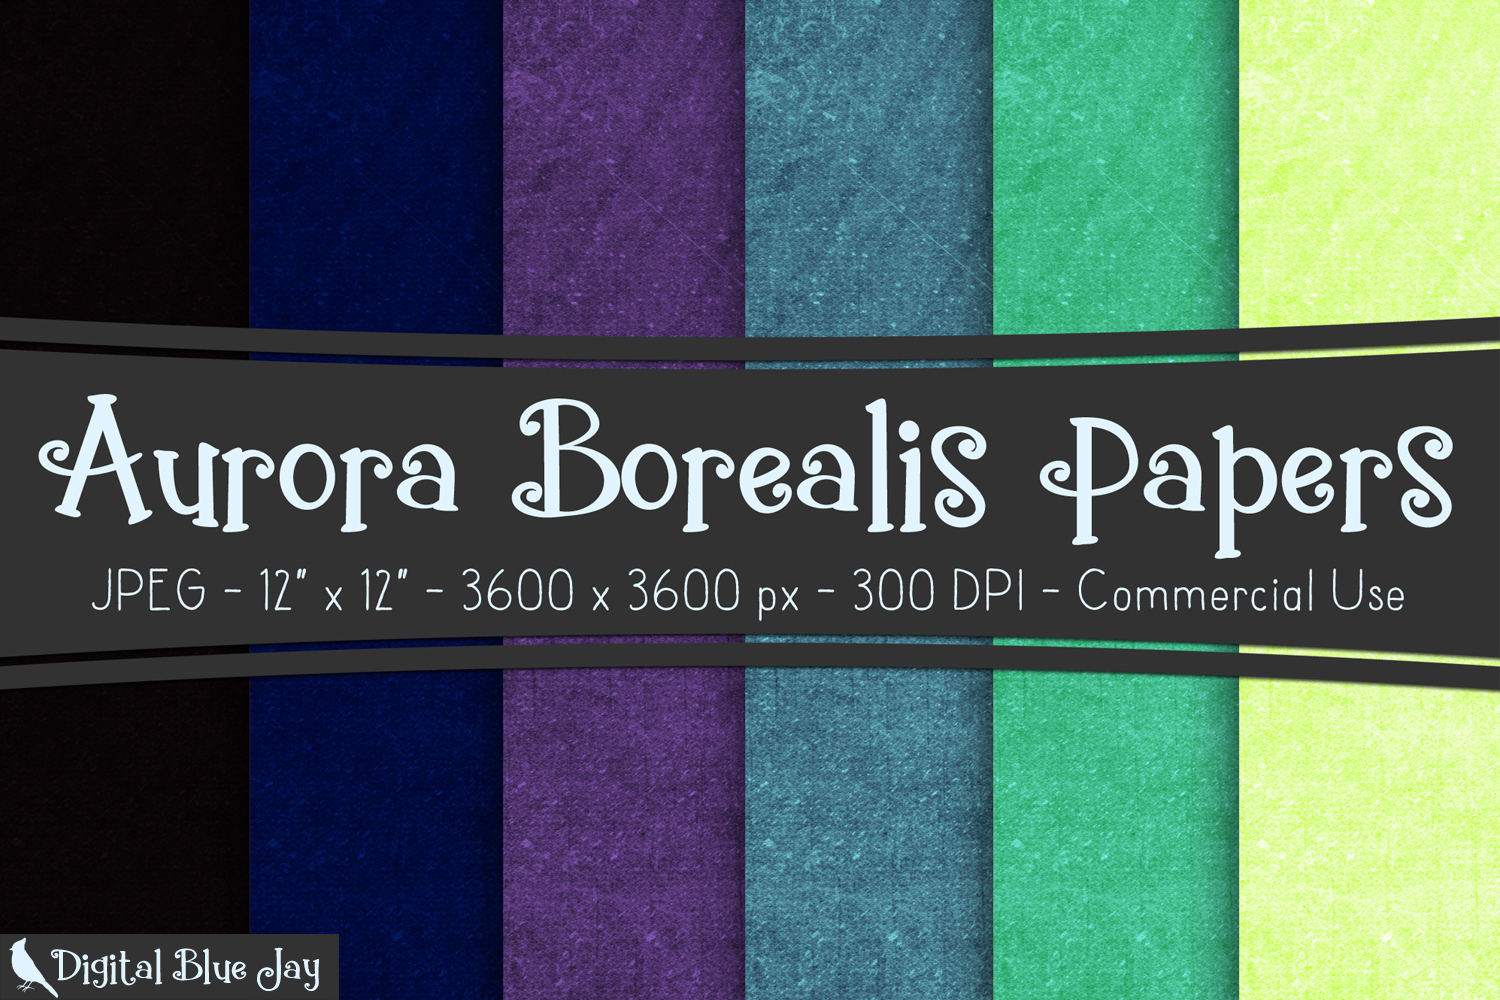 Digital Paper Textured Backgrounds - Aurora Borealis example image 1